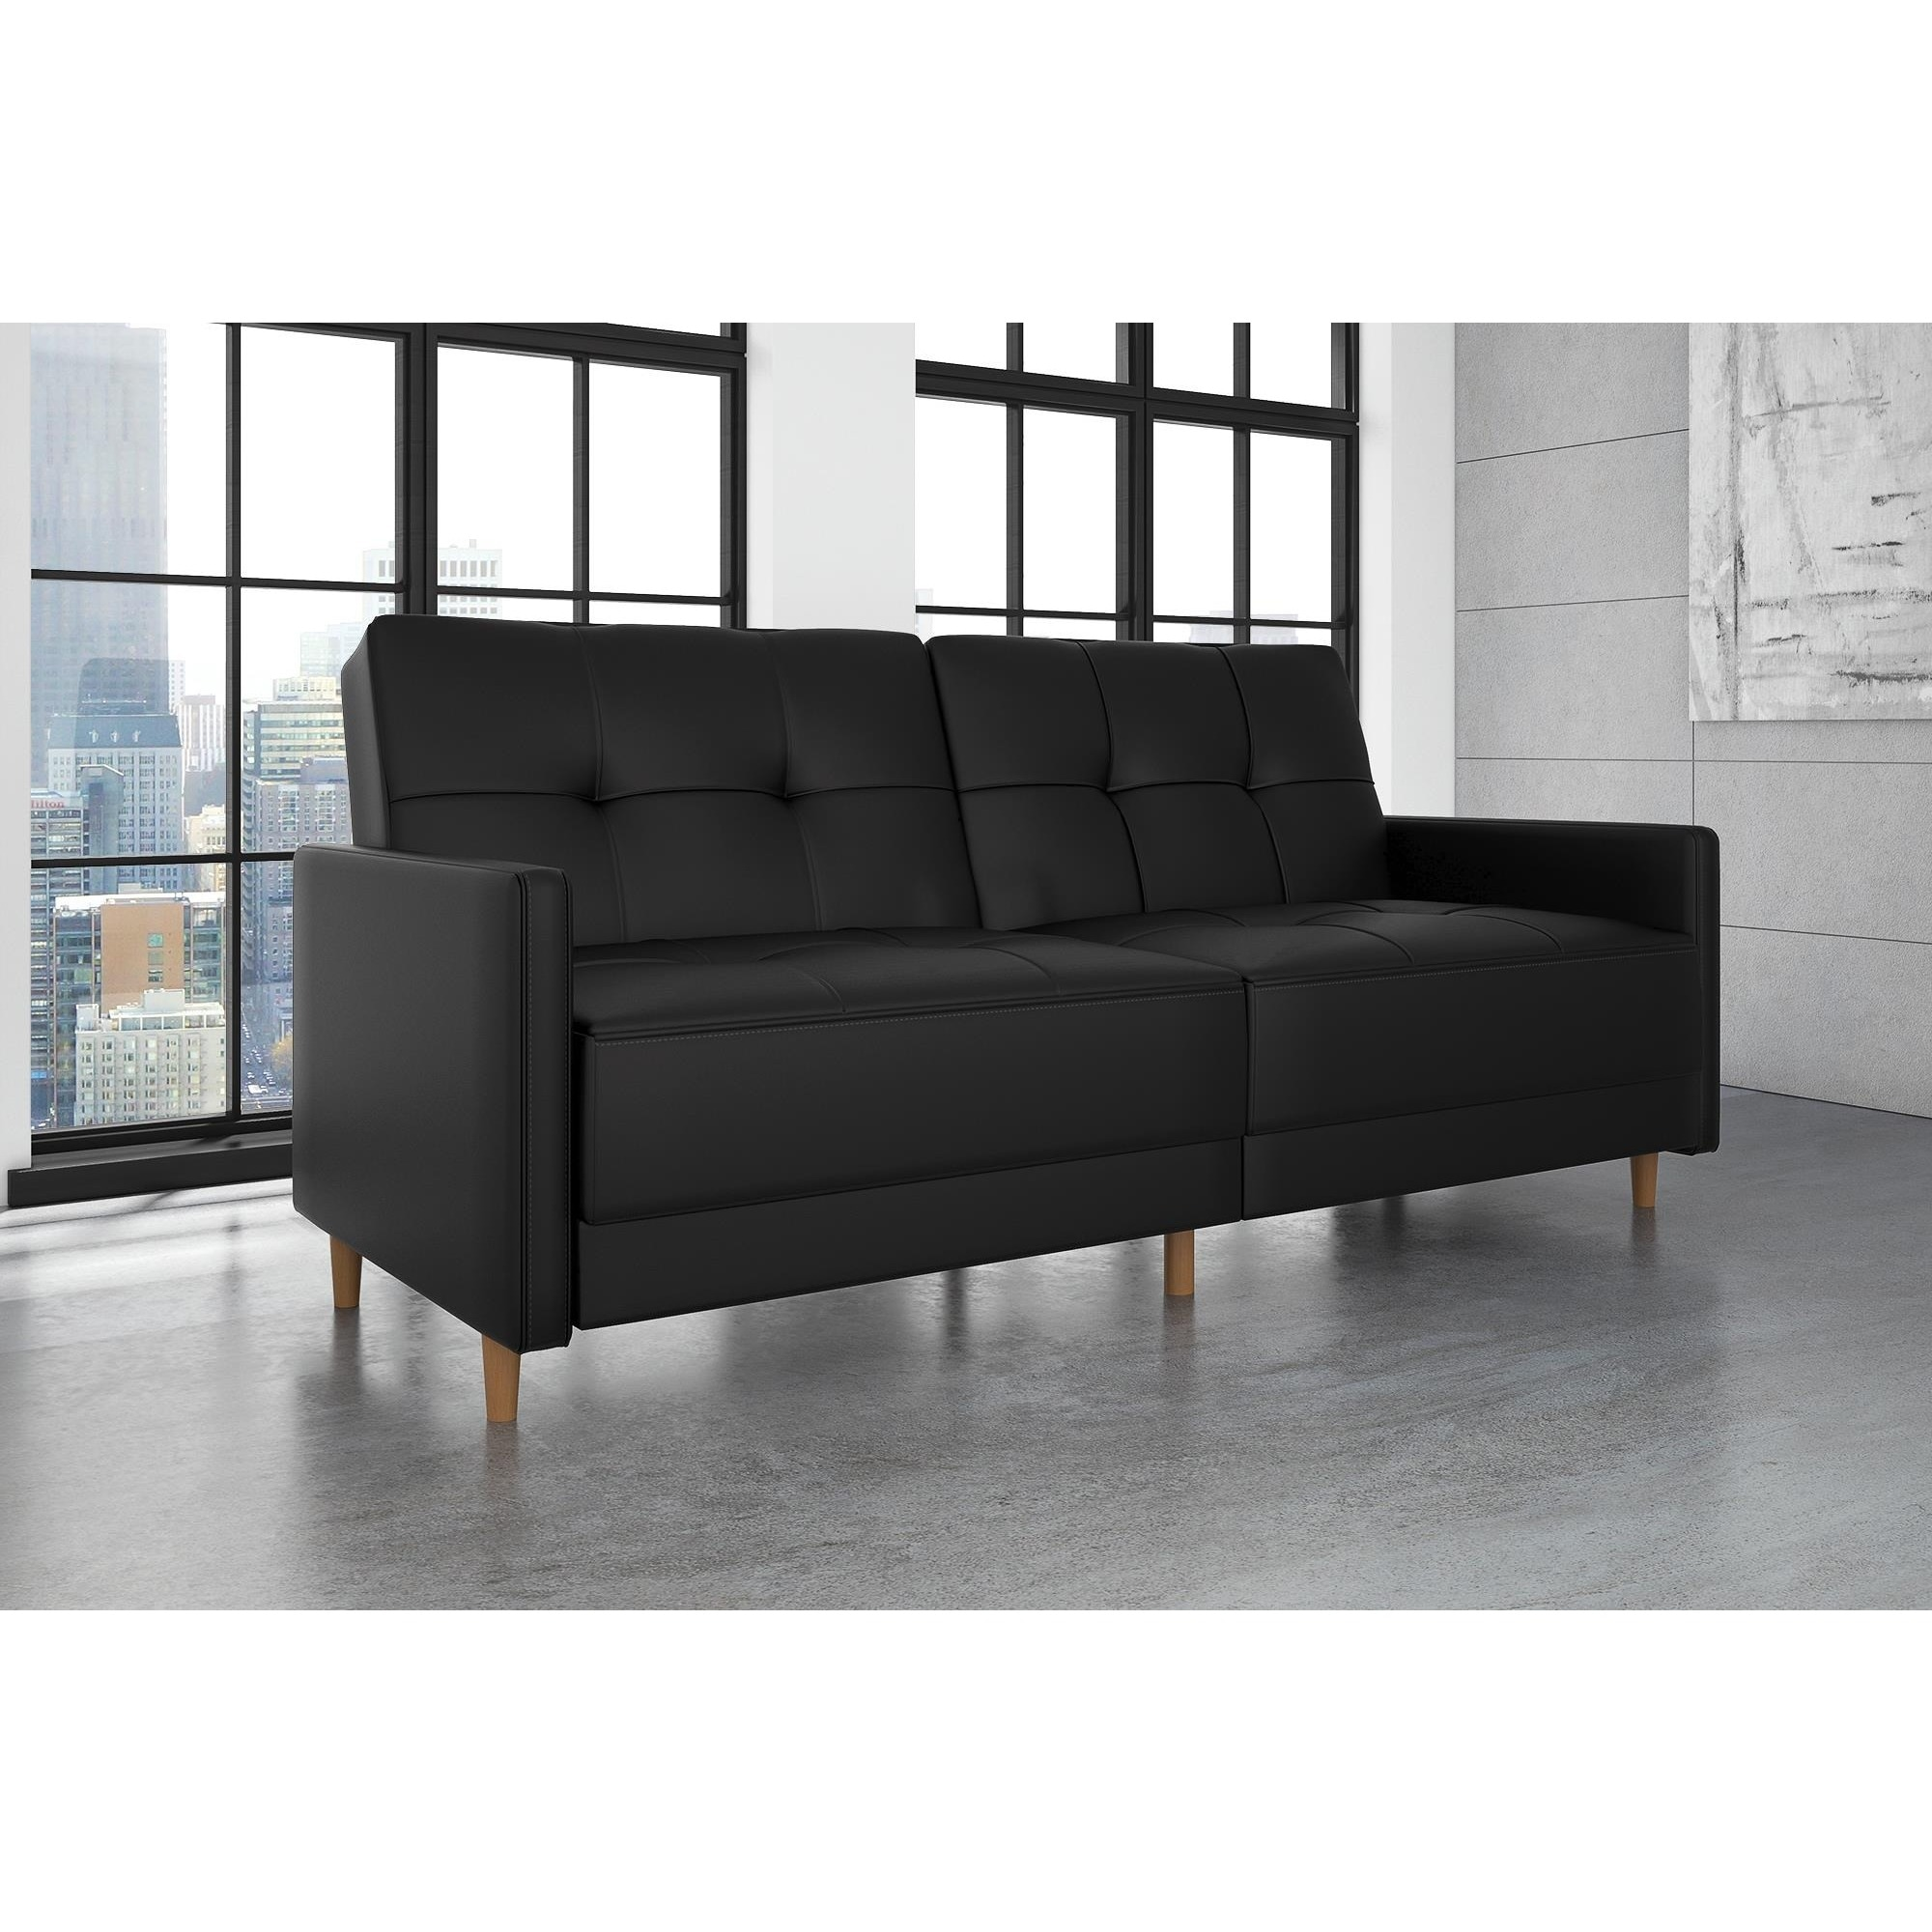 shop com futons futon nola walmart furniture tufted black dhp